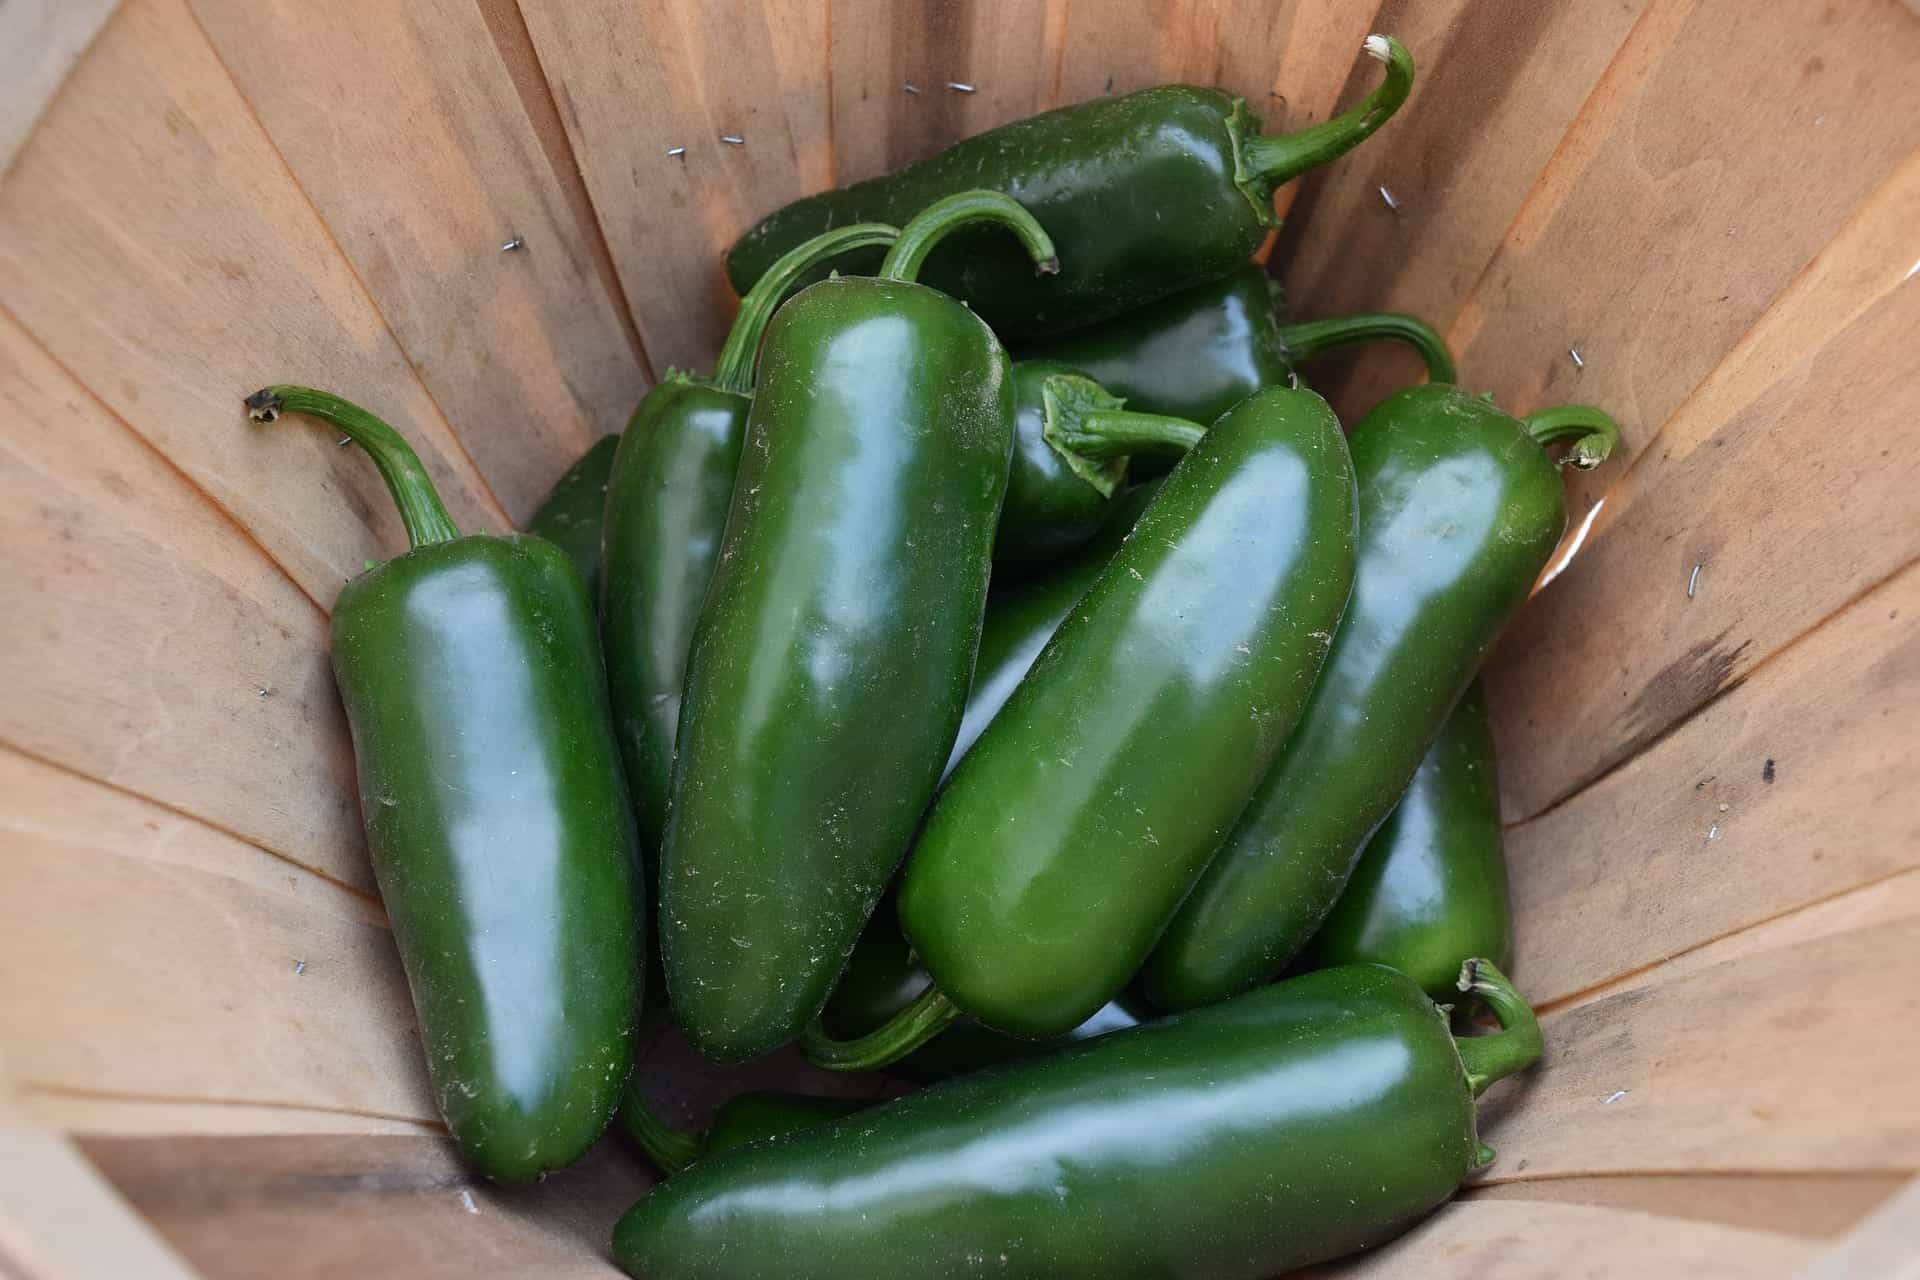 jalapeno peppers in container